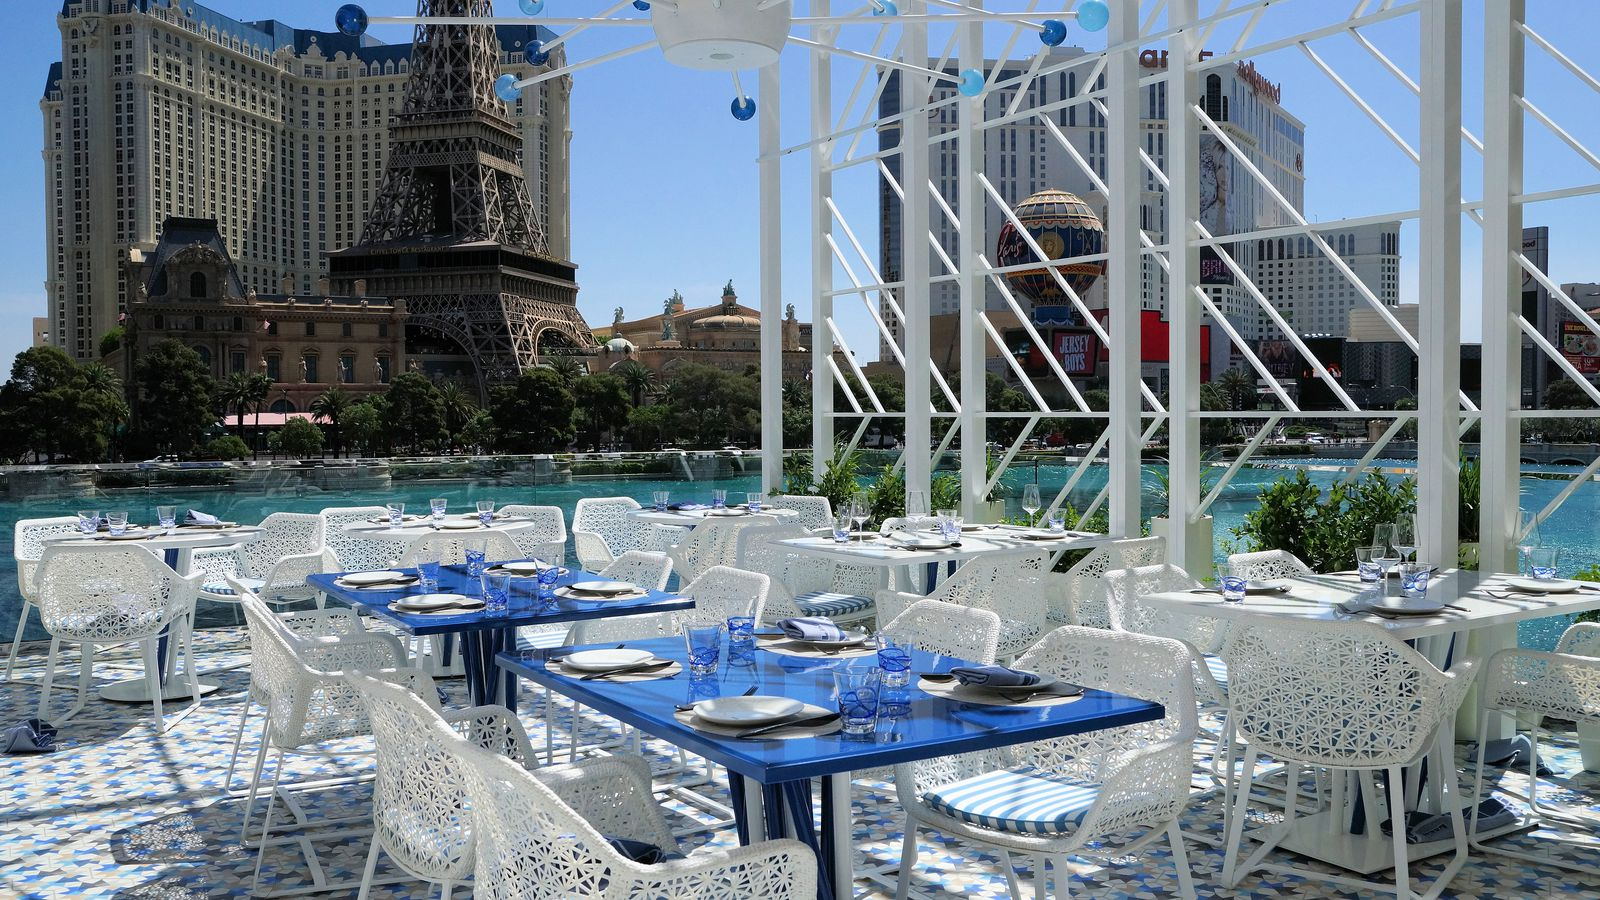 The hottest new outdoor dining spots in las vegas eater for Garden statues las vegas nv